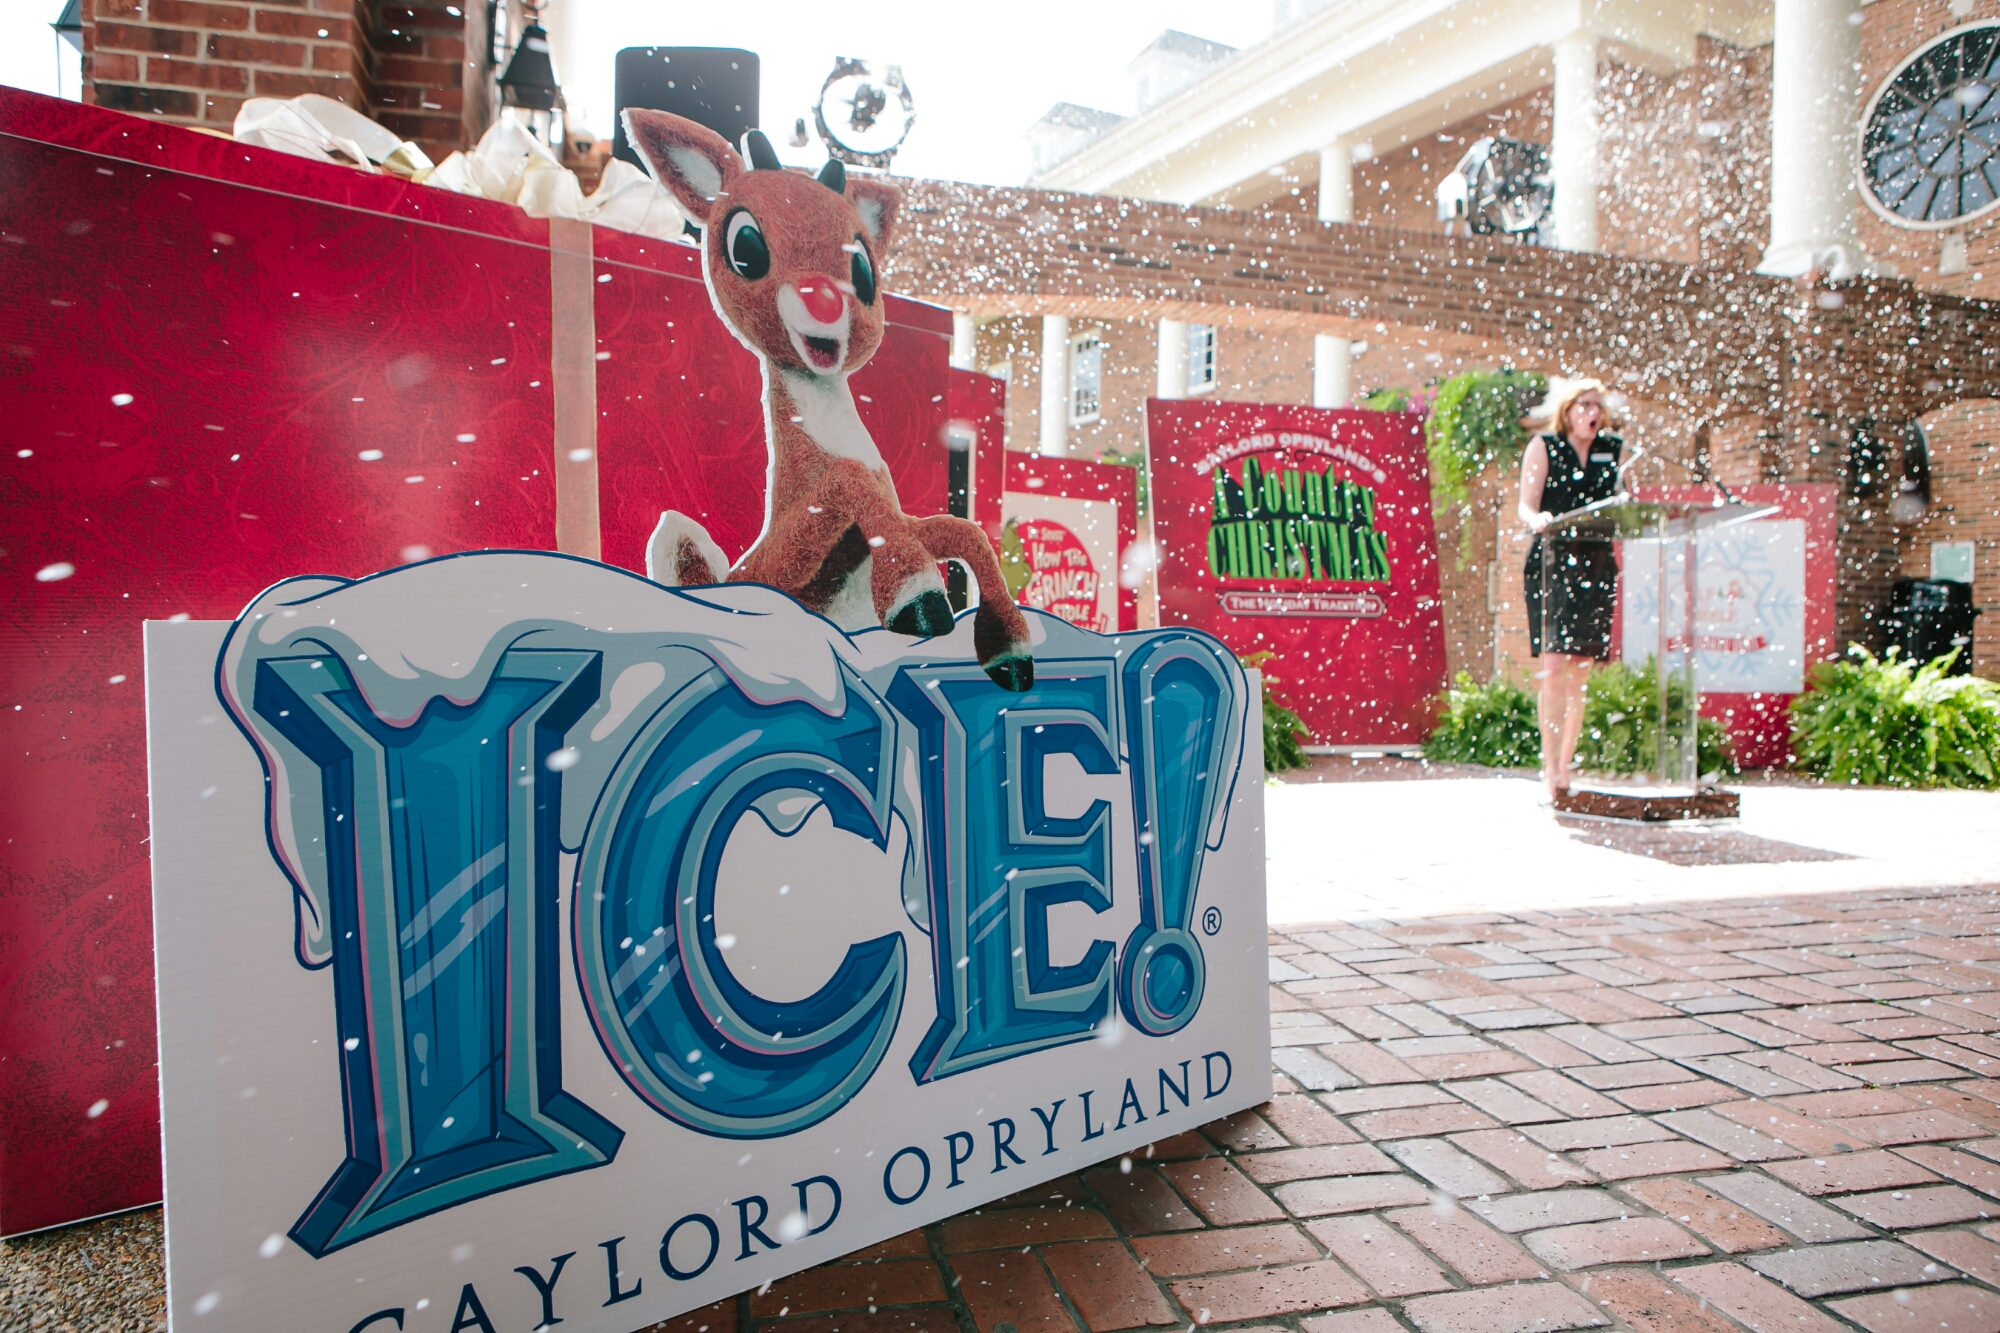 Opryland Christmas.Gaylord Opryland Resort Starts Christmas Preparations In July